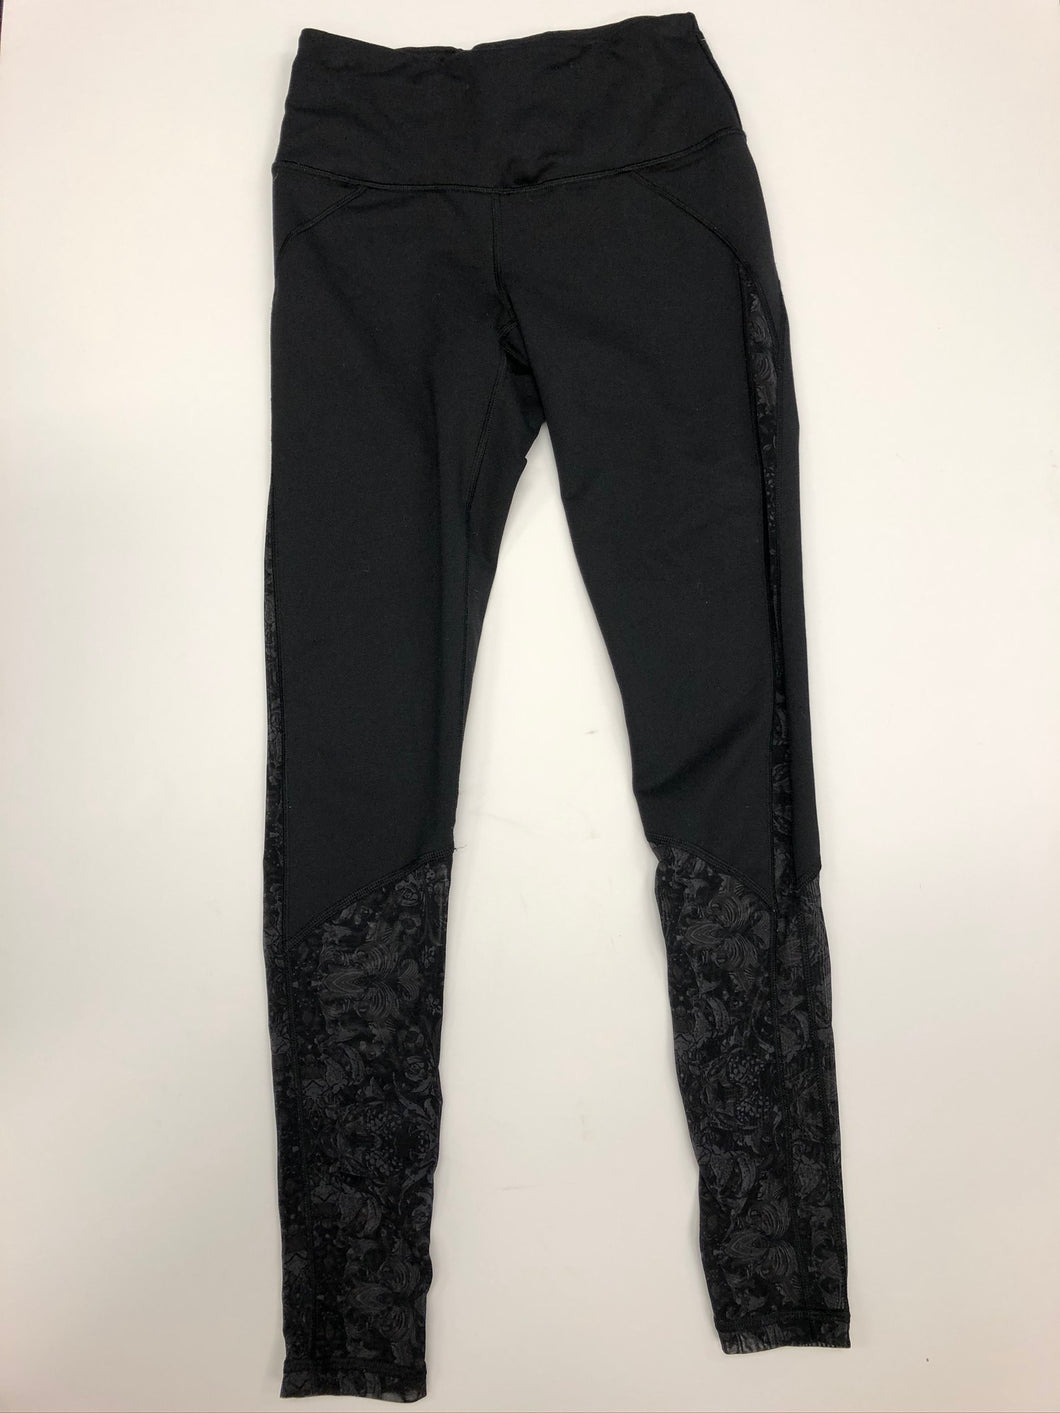 Pink By Victoria's Secret Womens Athletic Pants Size Extra Small